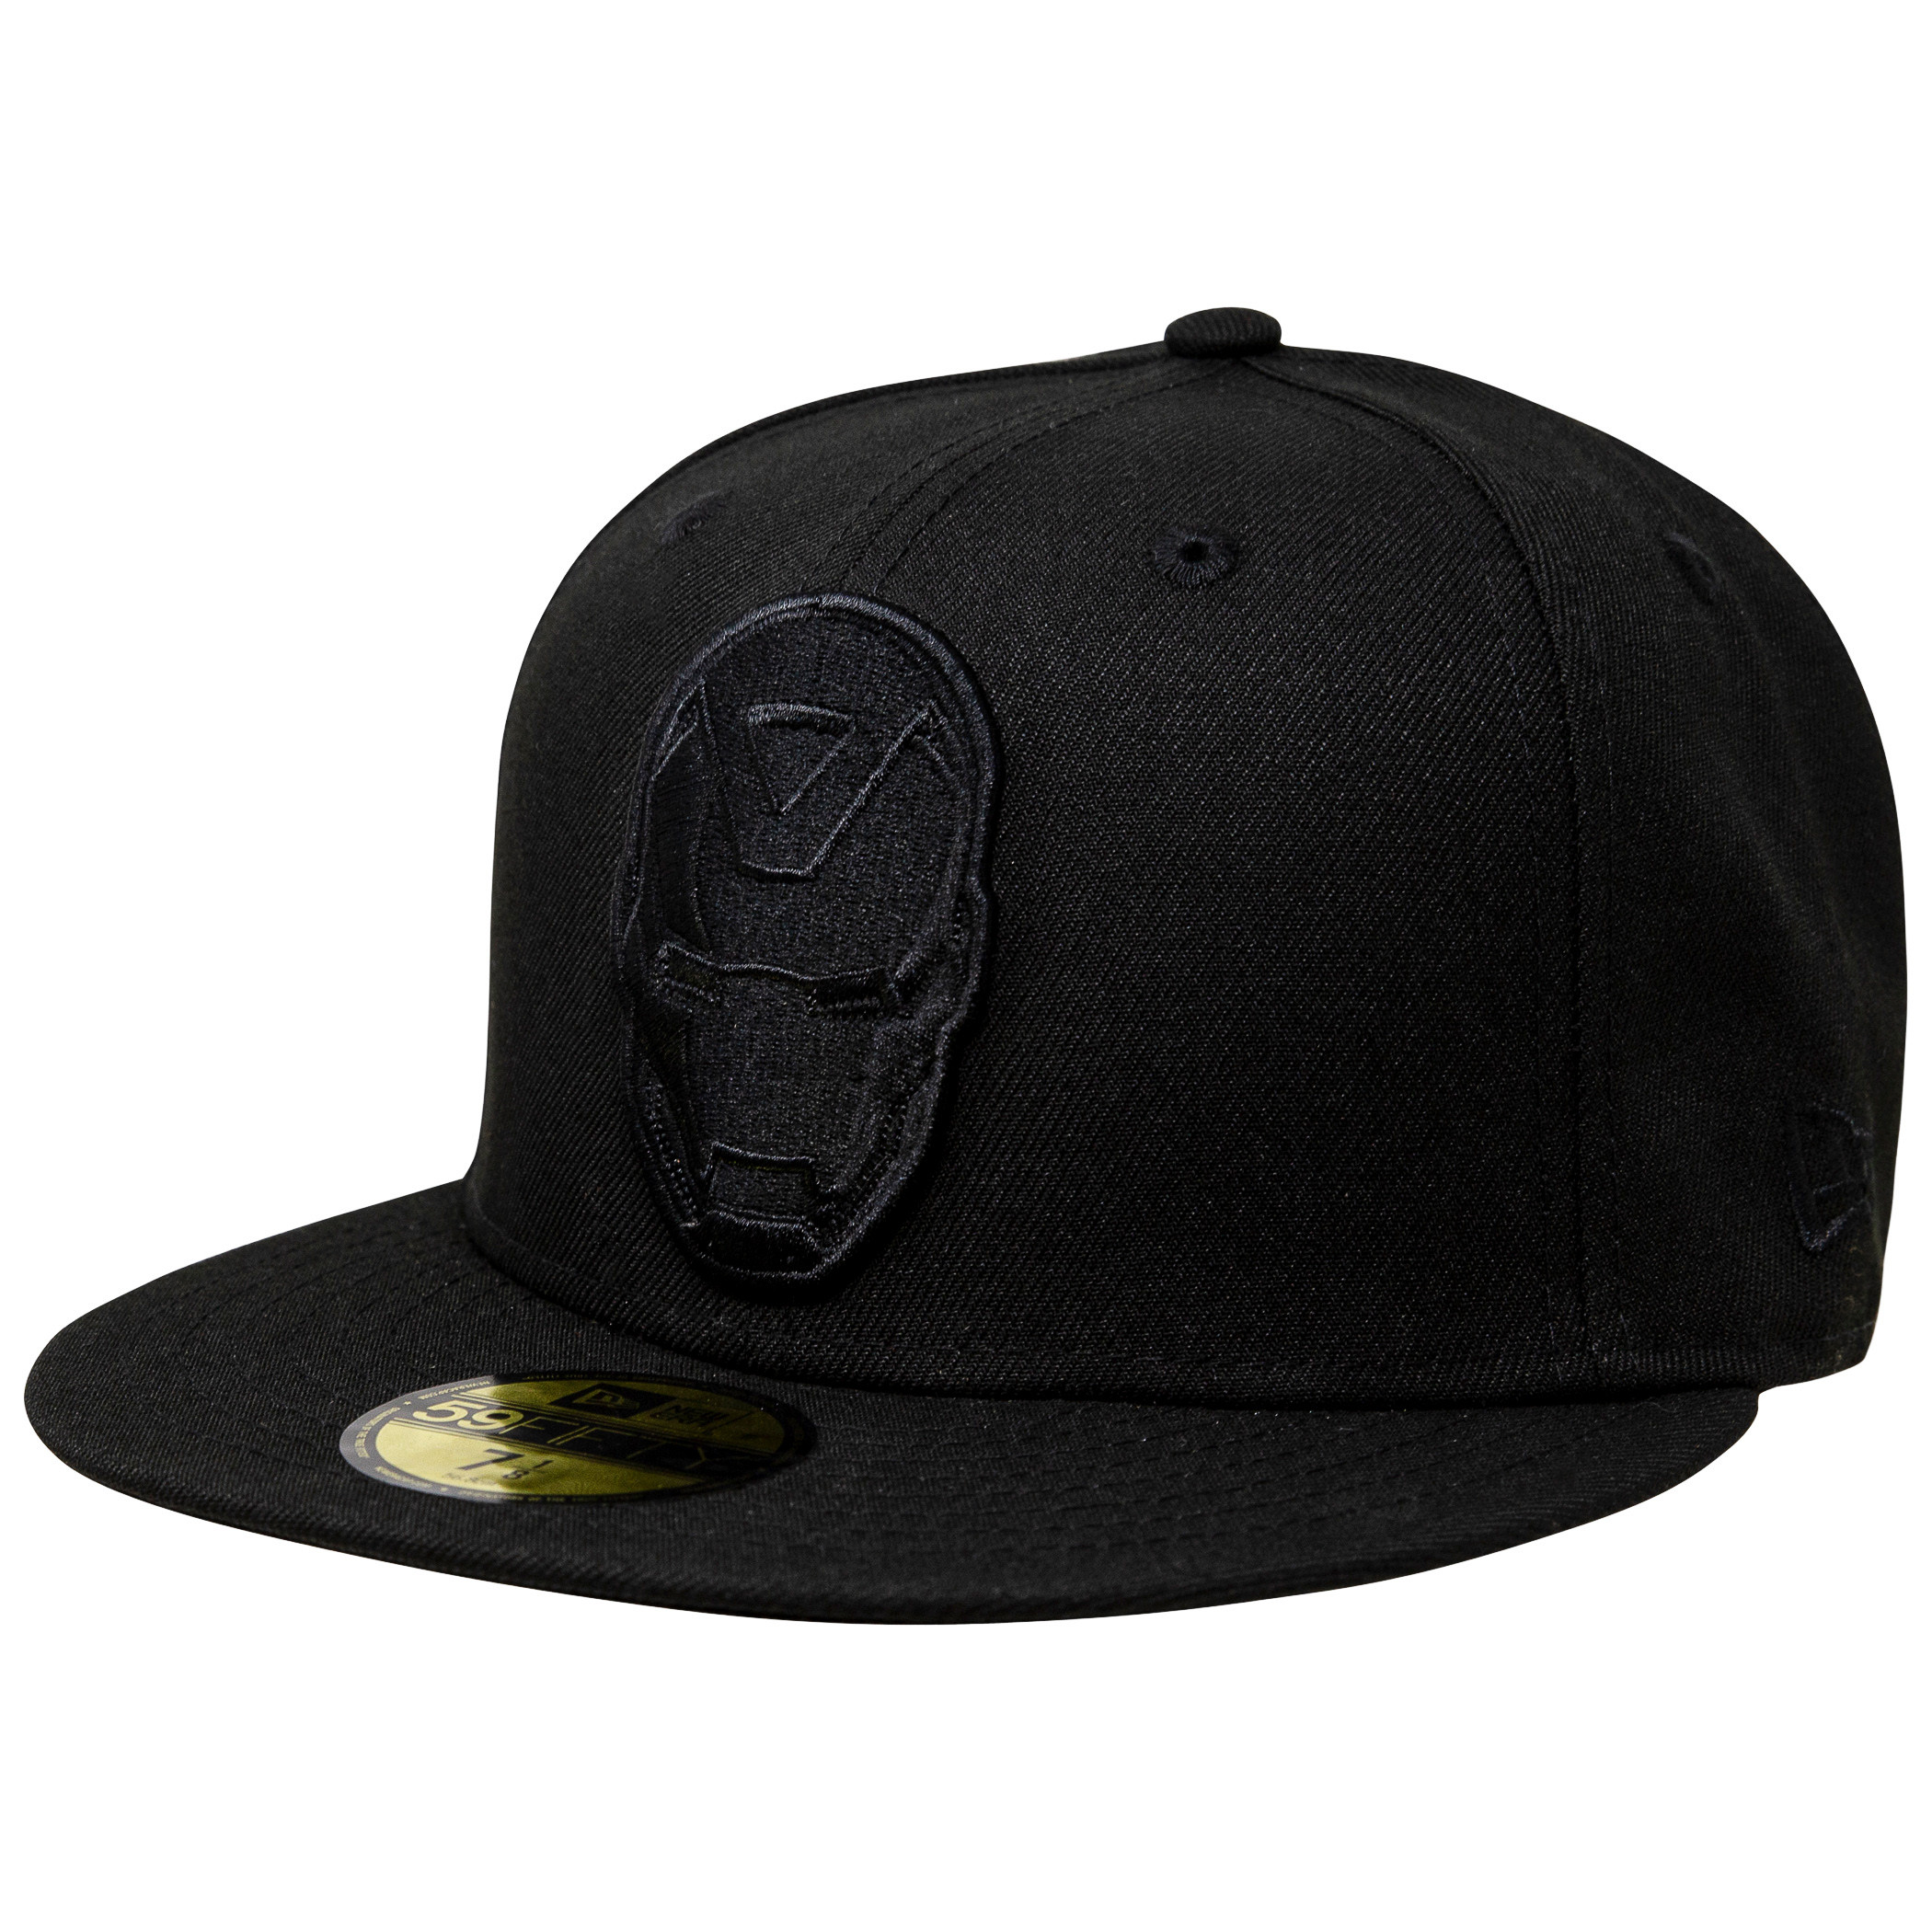 Long Live Iron Man Memorial MCU New Era 59Fifty Fitted Hat